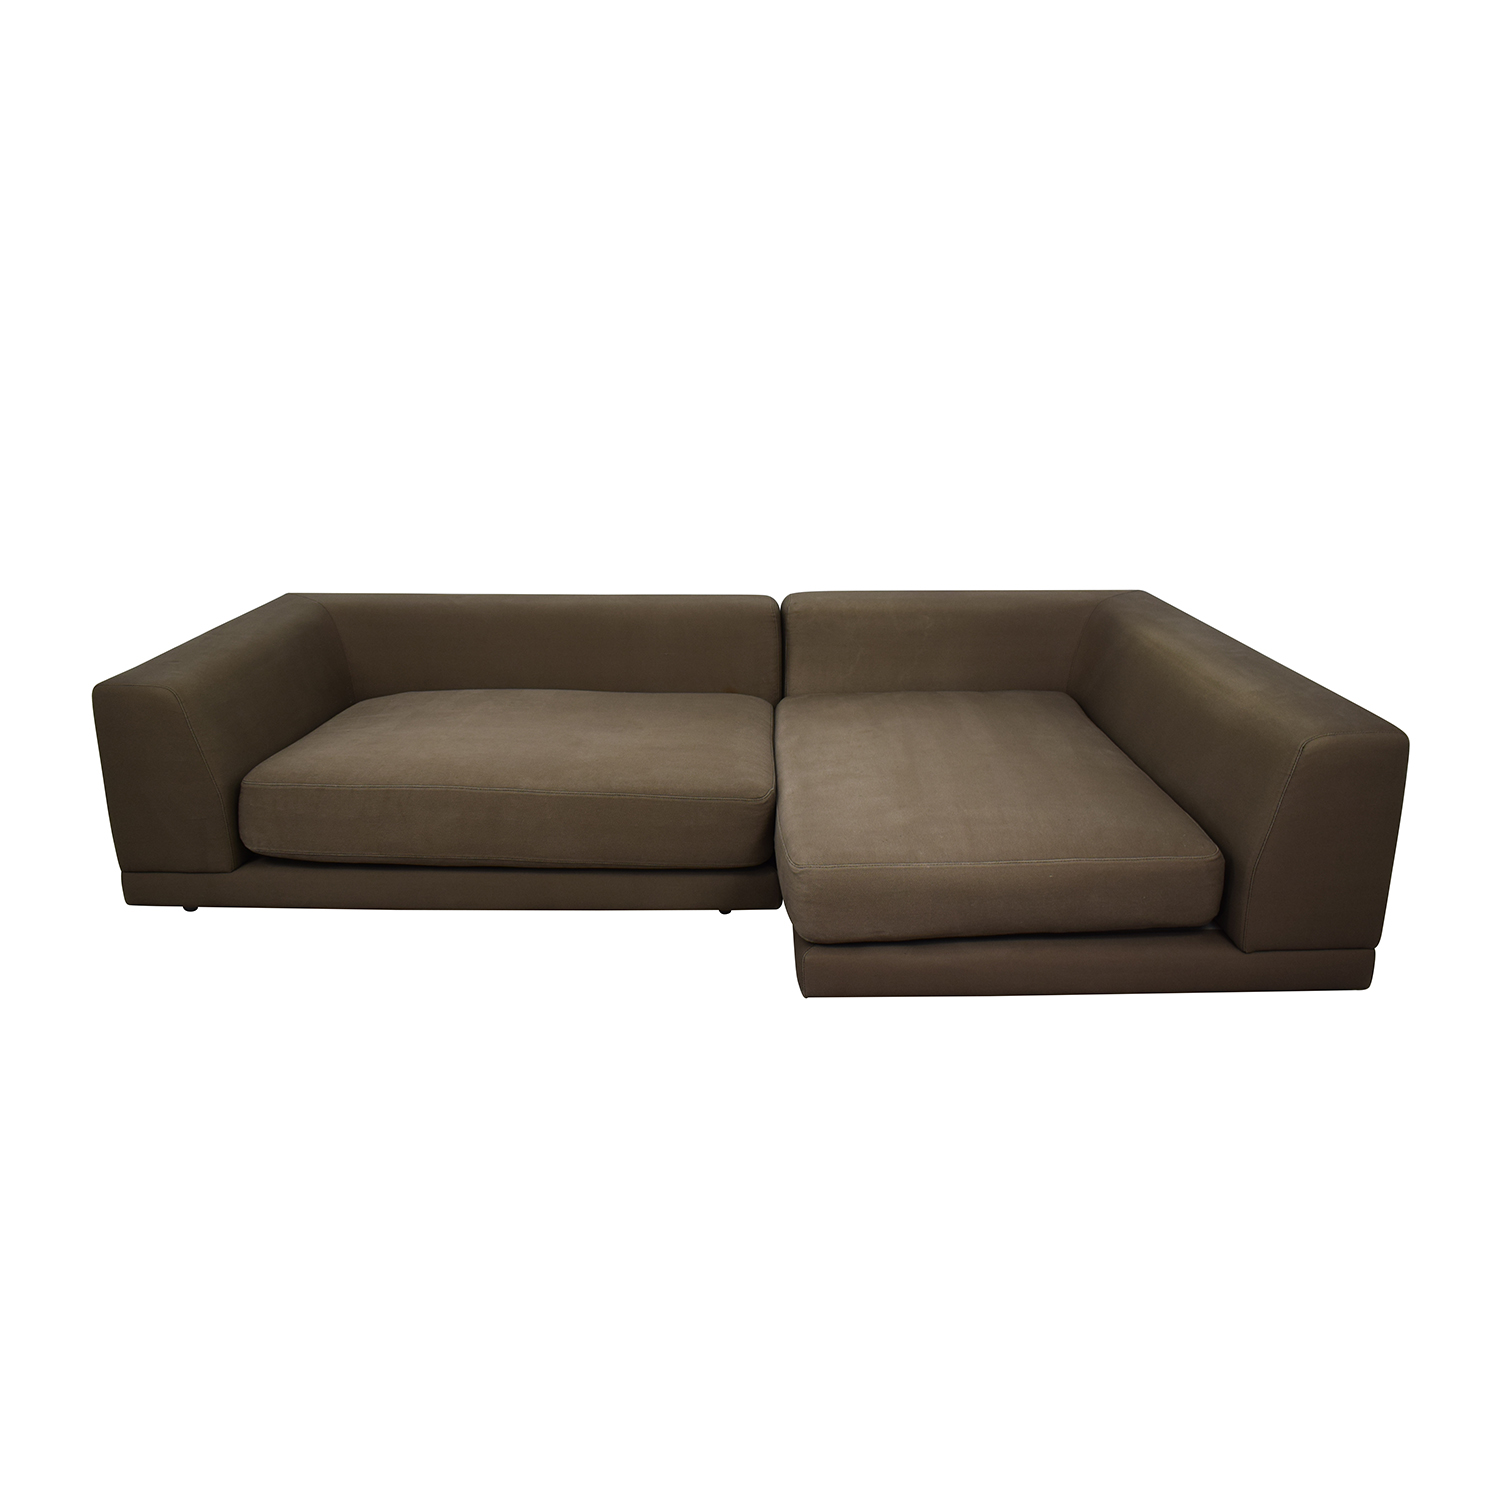 CB2 Uno Two-Piece Right Arm Sectional Sofa / Sectionals